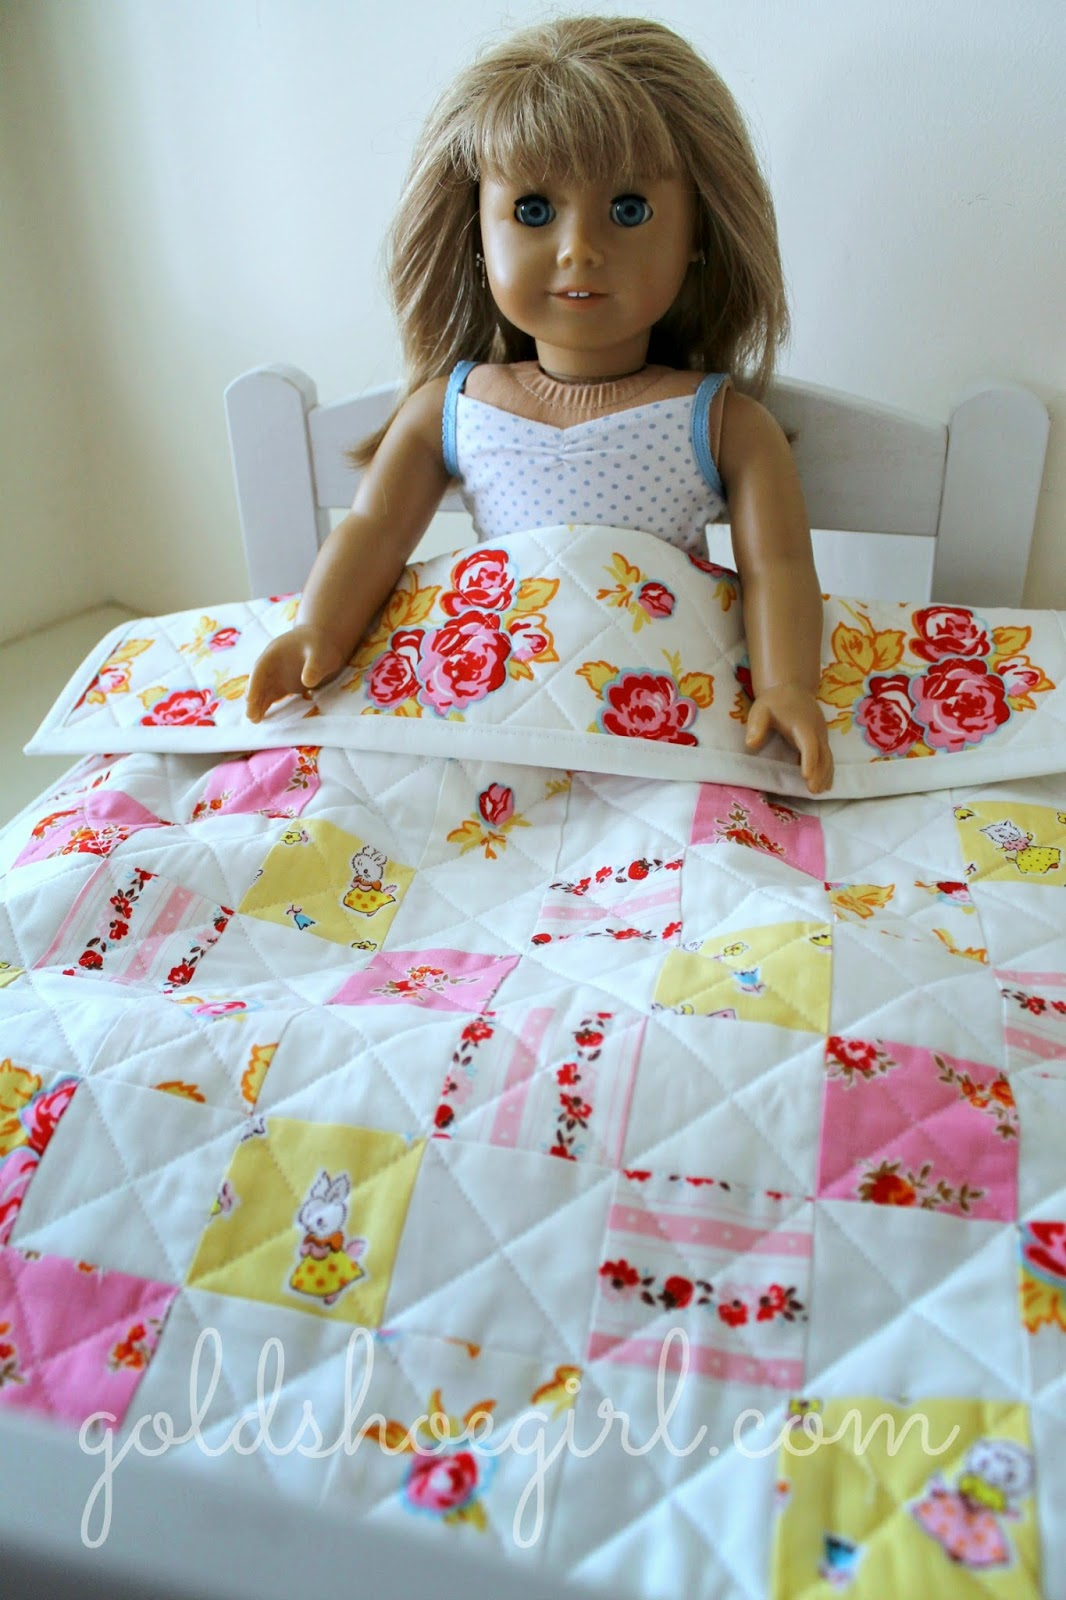 goldshoegirl milk sugar flower doll quilt on bed